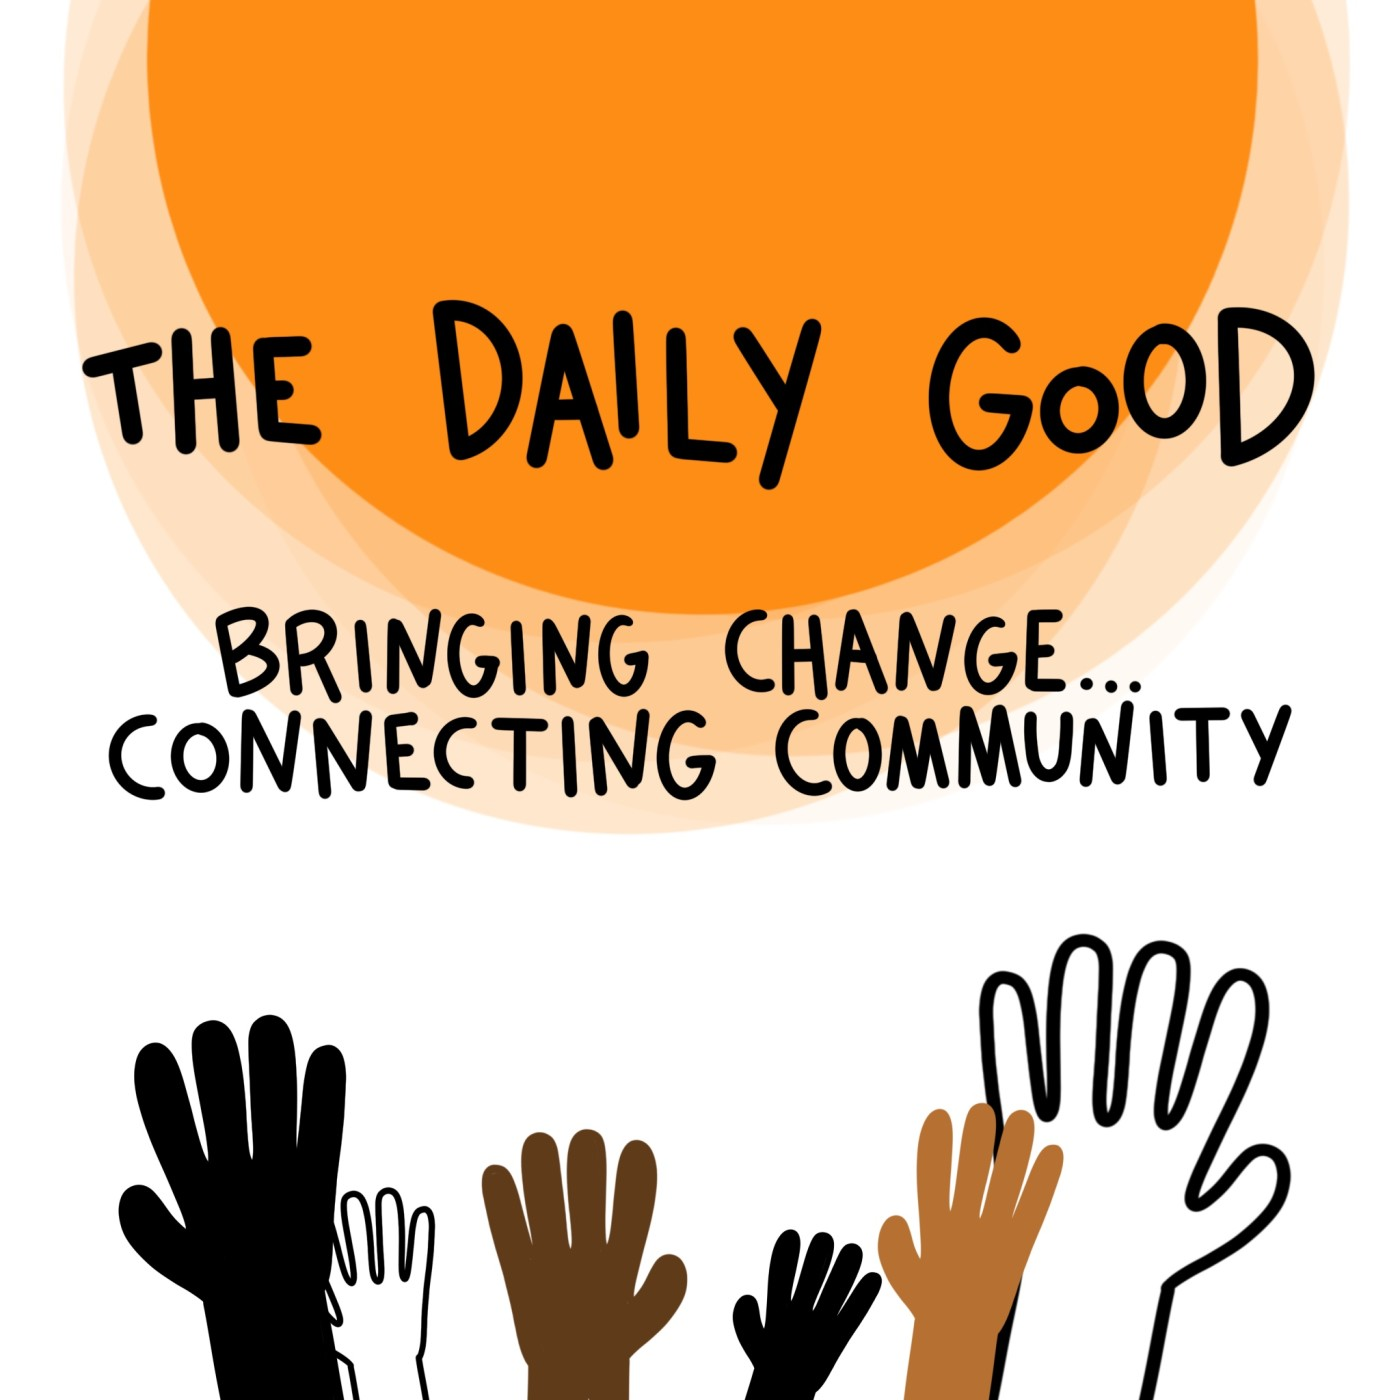 the daily good: bringing change...connecting community